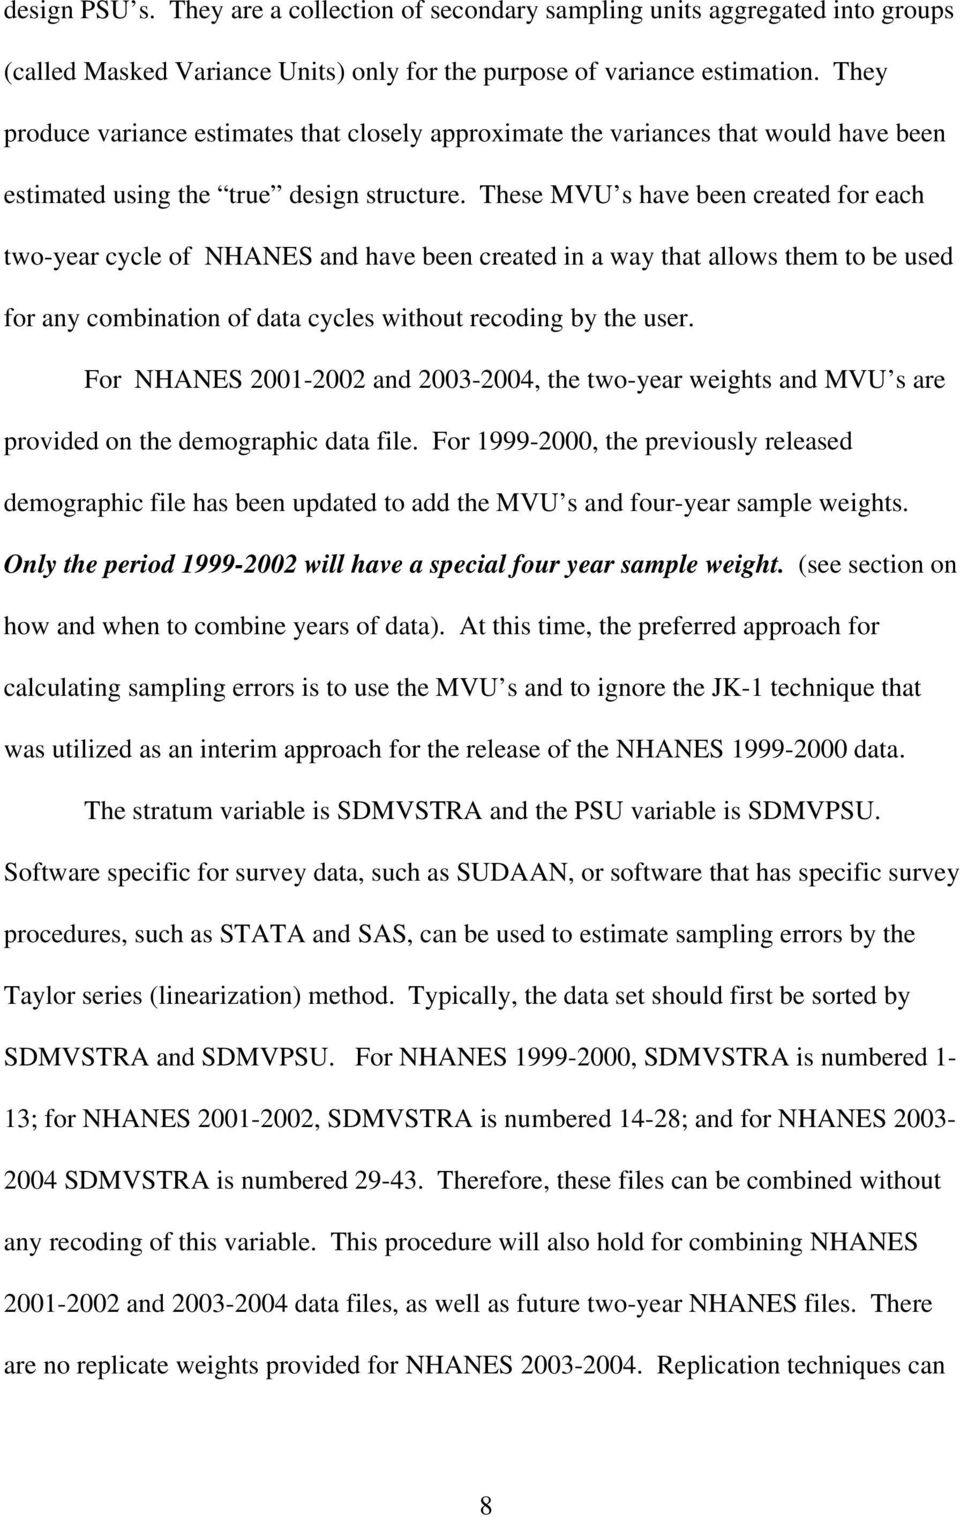 These MVU s have been created for each two-year cycle of NHANES and have been created in a way that allows them to be used for any combination of data cycles without recoding by the user.